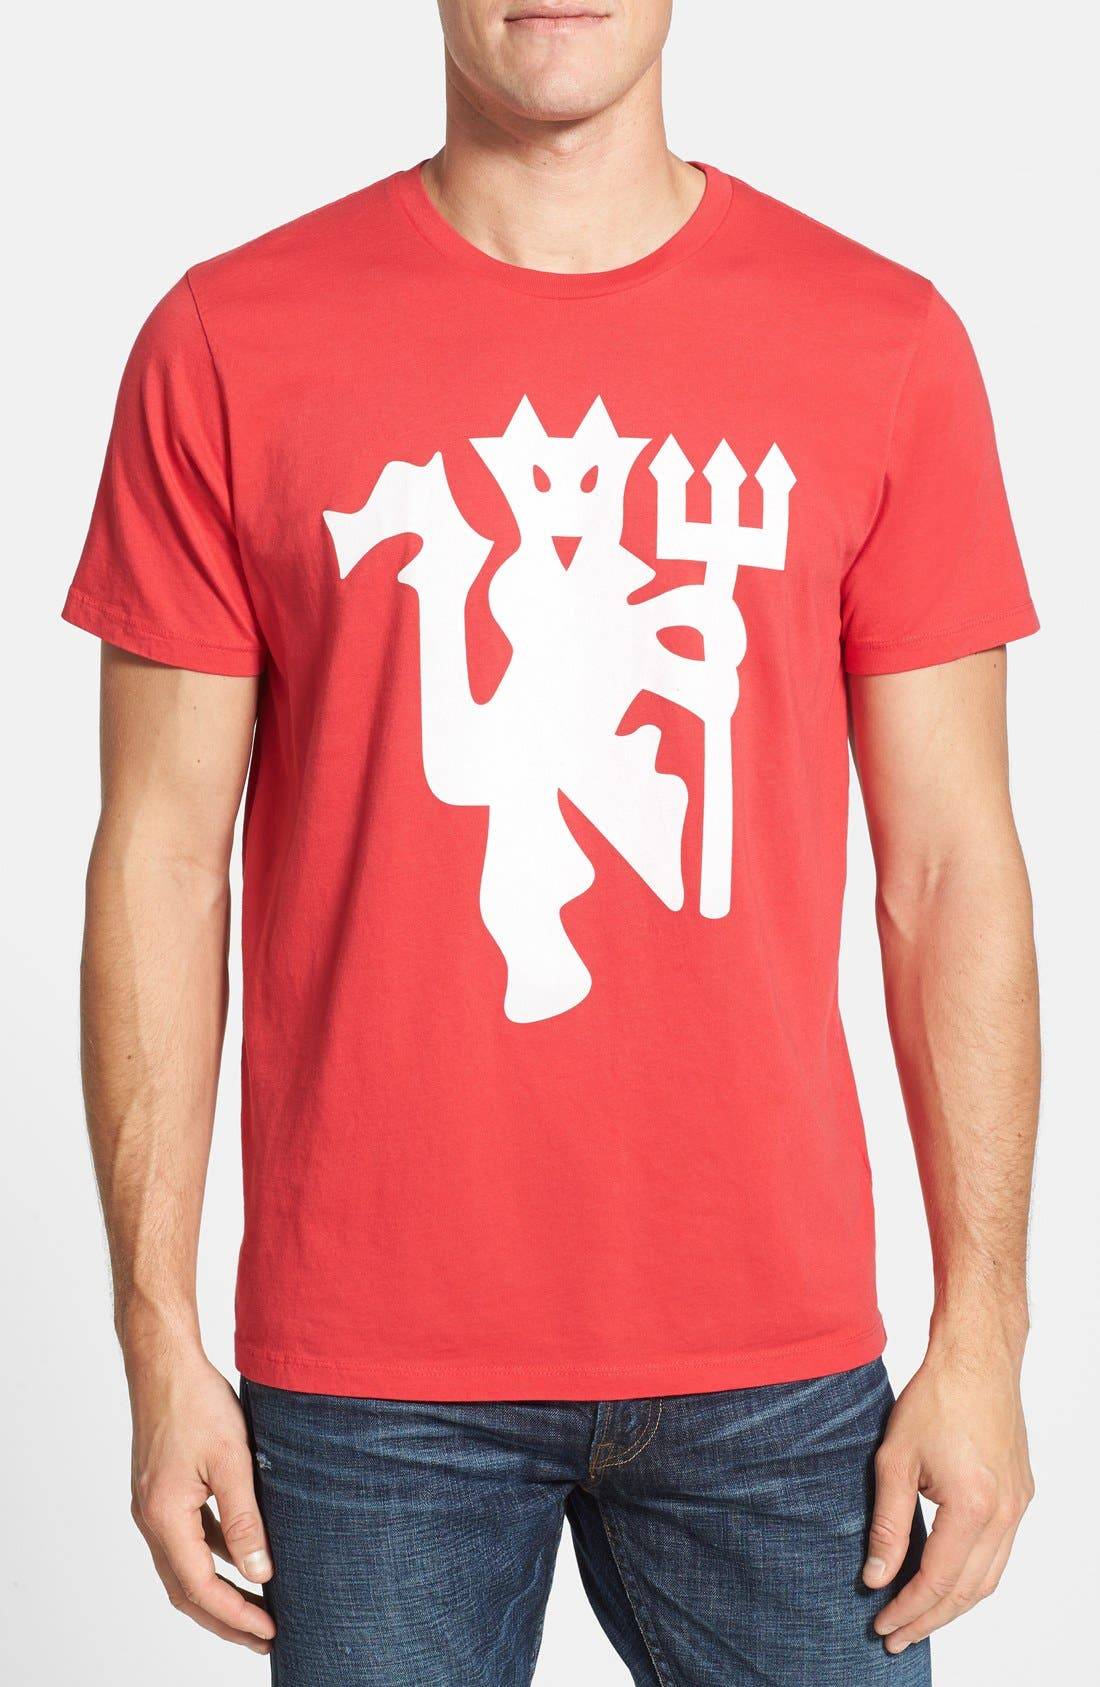 Main Image - Junk Food 'Manchester United FC' Graphic T-Shirt